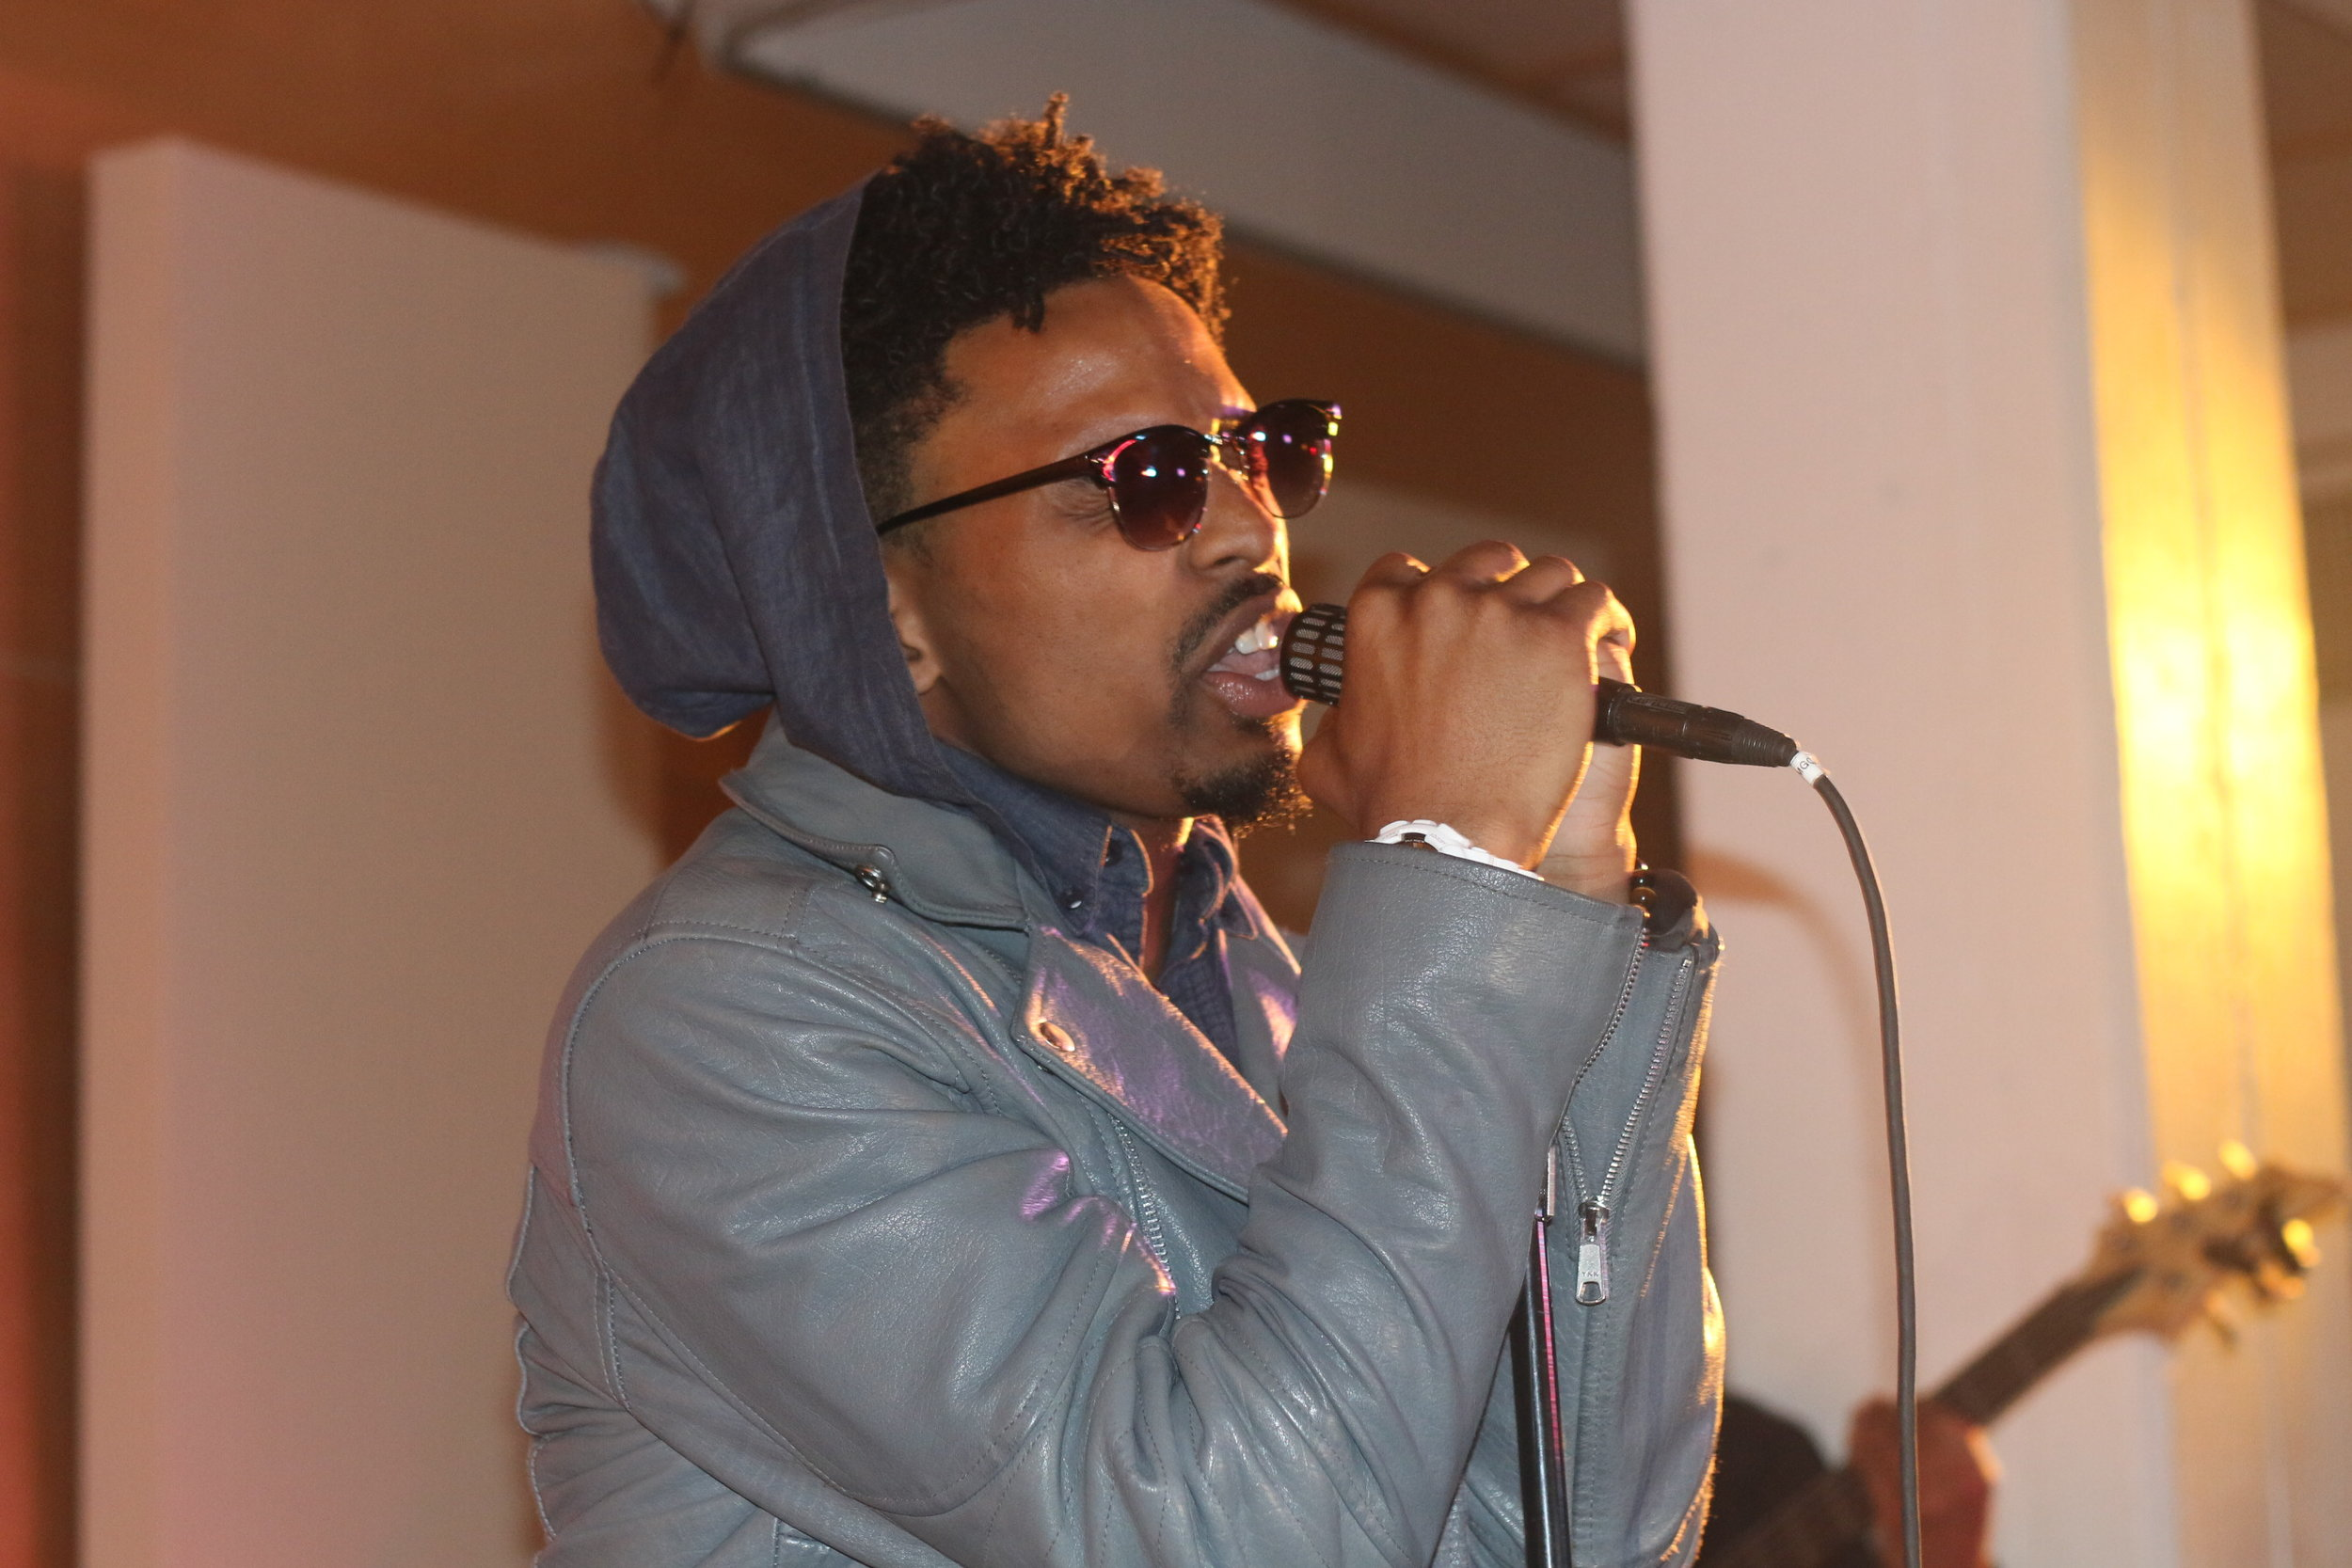 Singer Brill Performing at Henny and The Homies